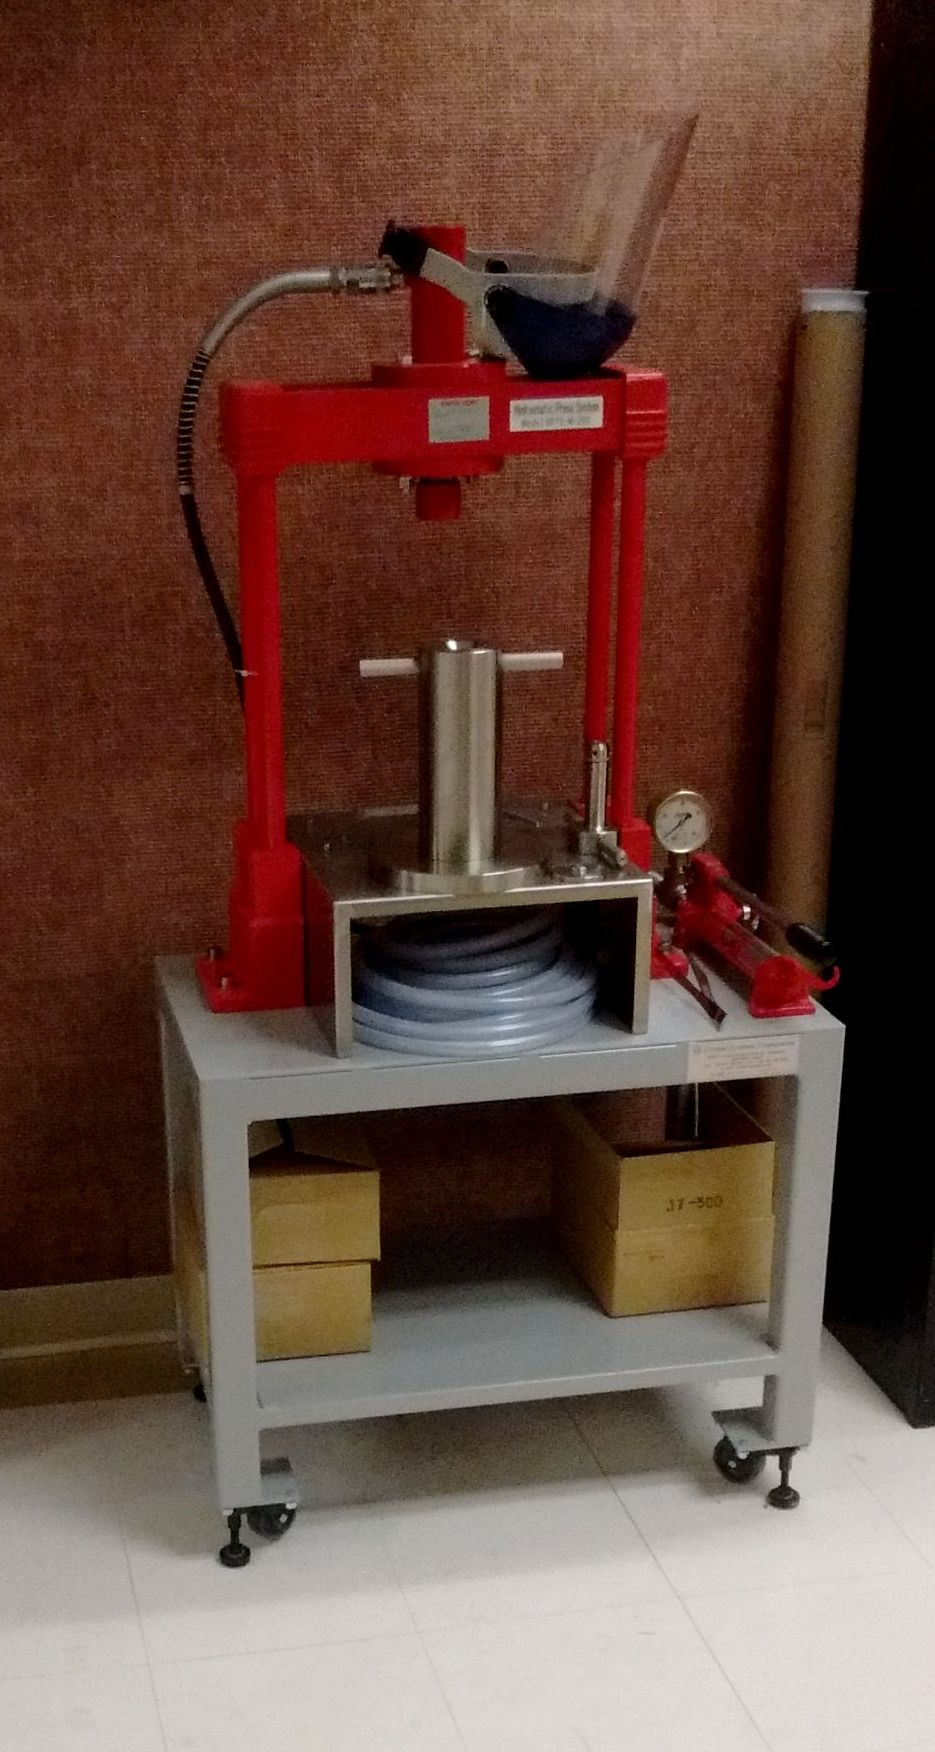 Hydrostatic press for making rods for crystal growth